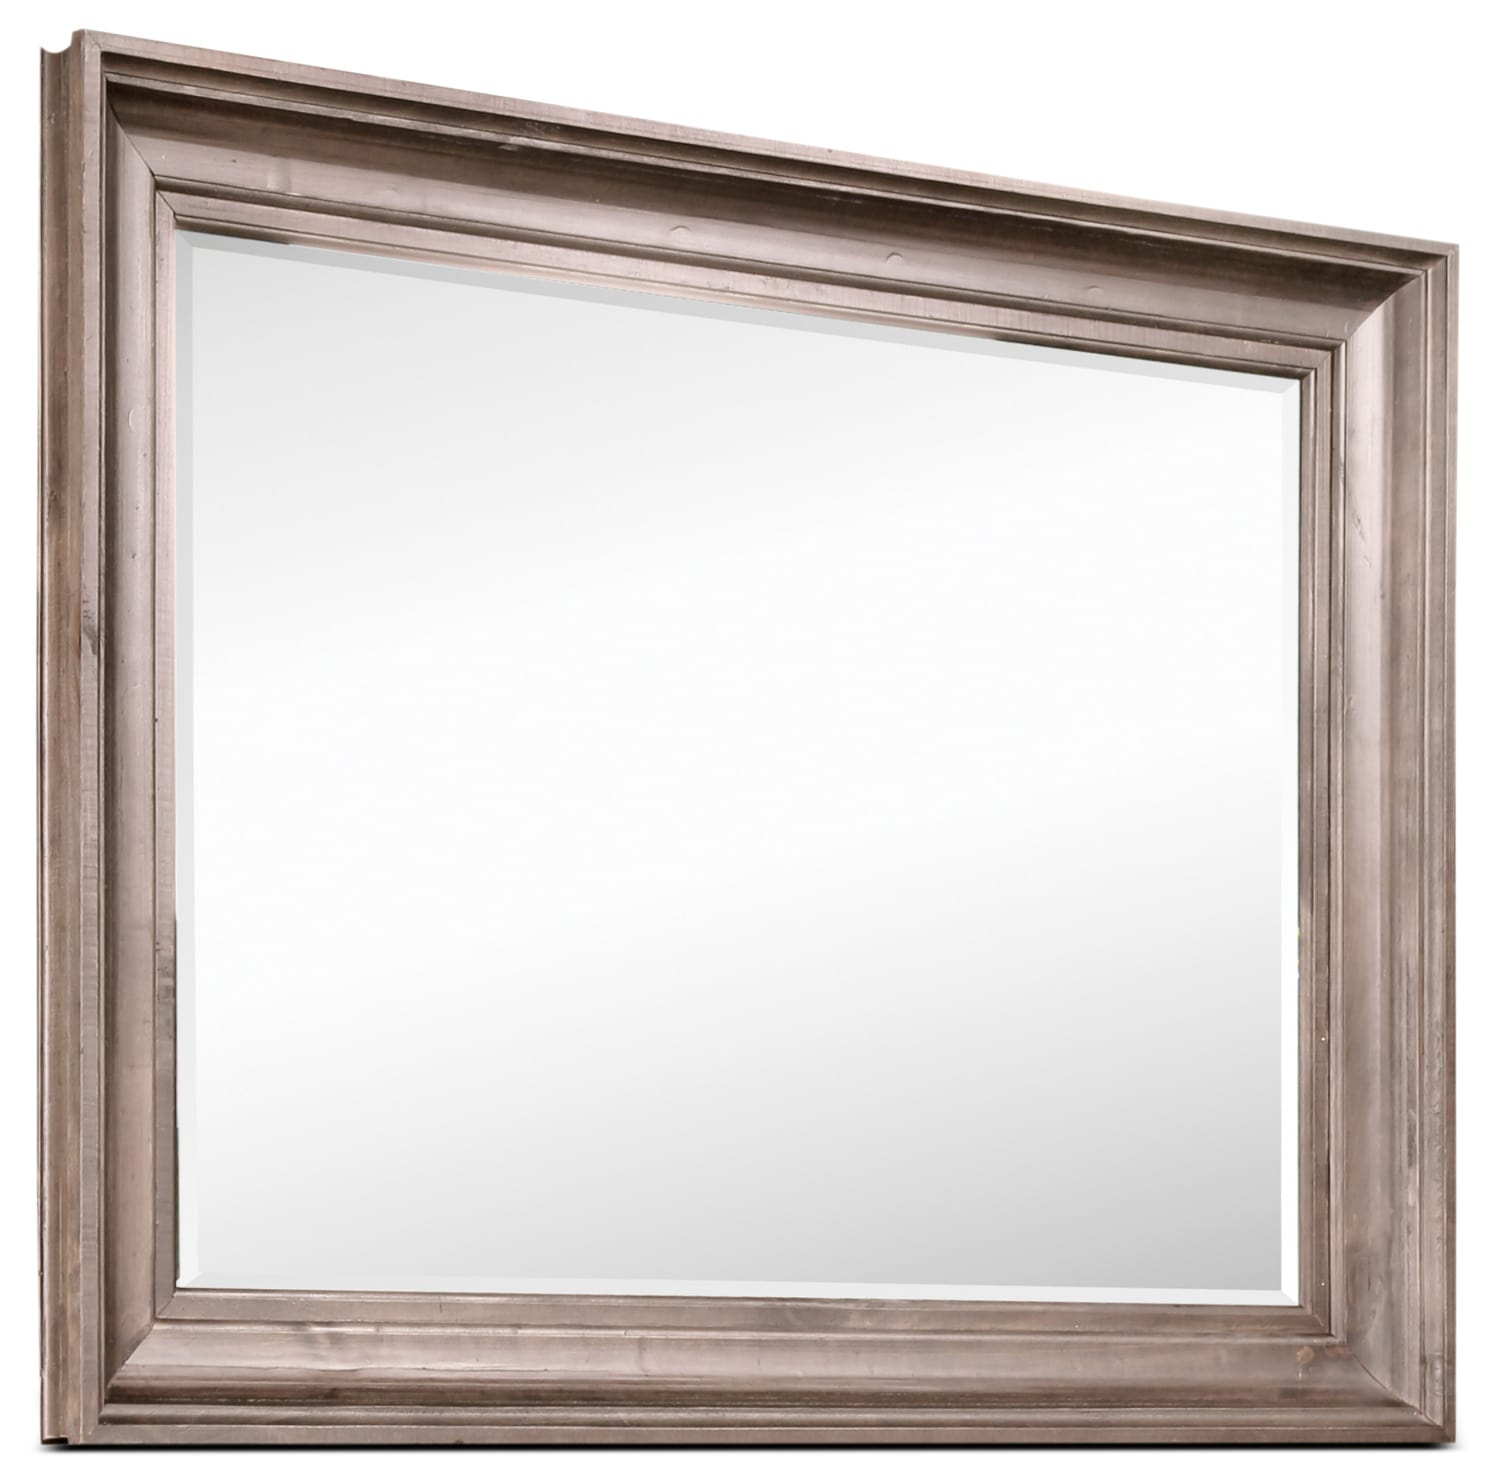 Bedroom Furniture - Calistoga Mirror – Dovetail Grey